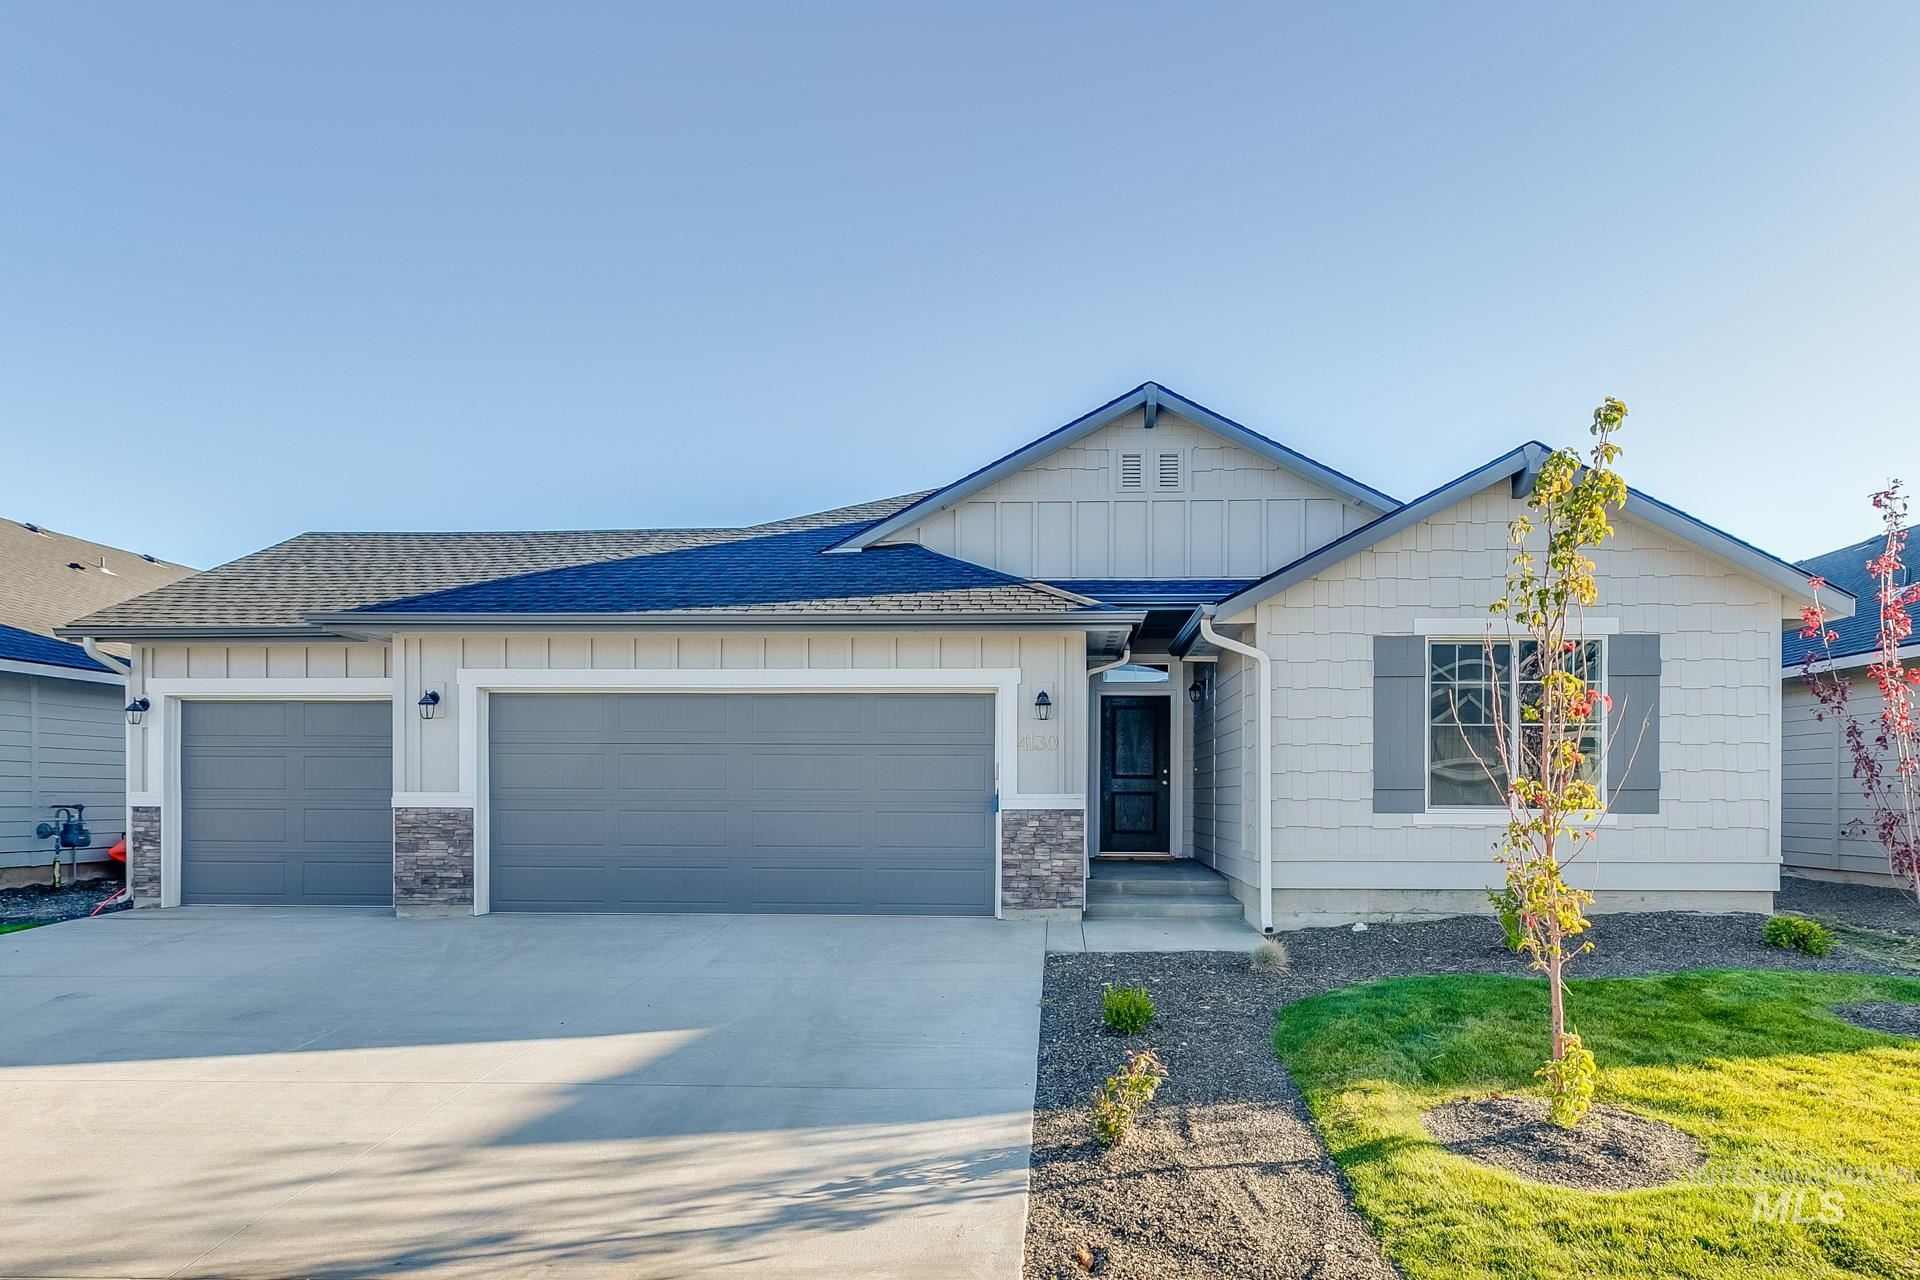 4130 S Barletta Way, Meridian, ID 83642 - MLS#: 98764129